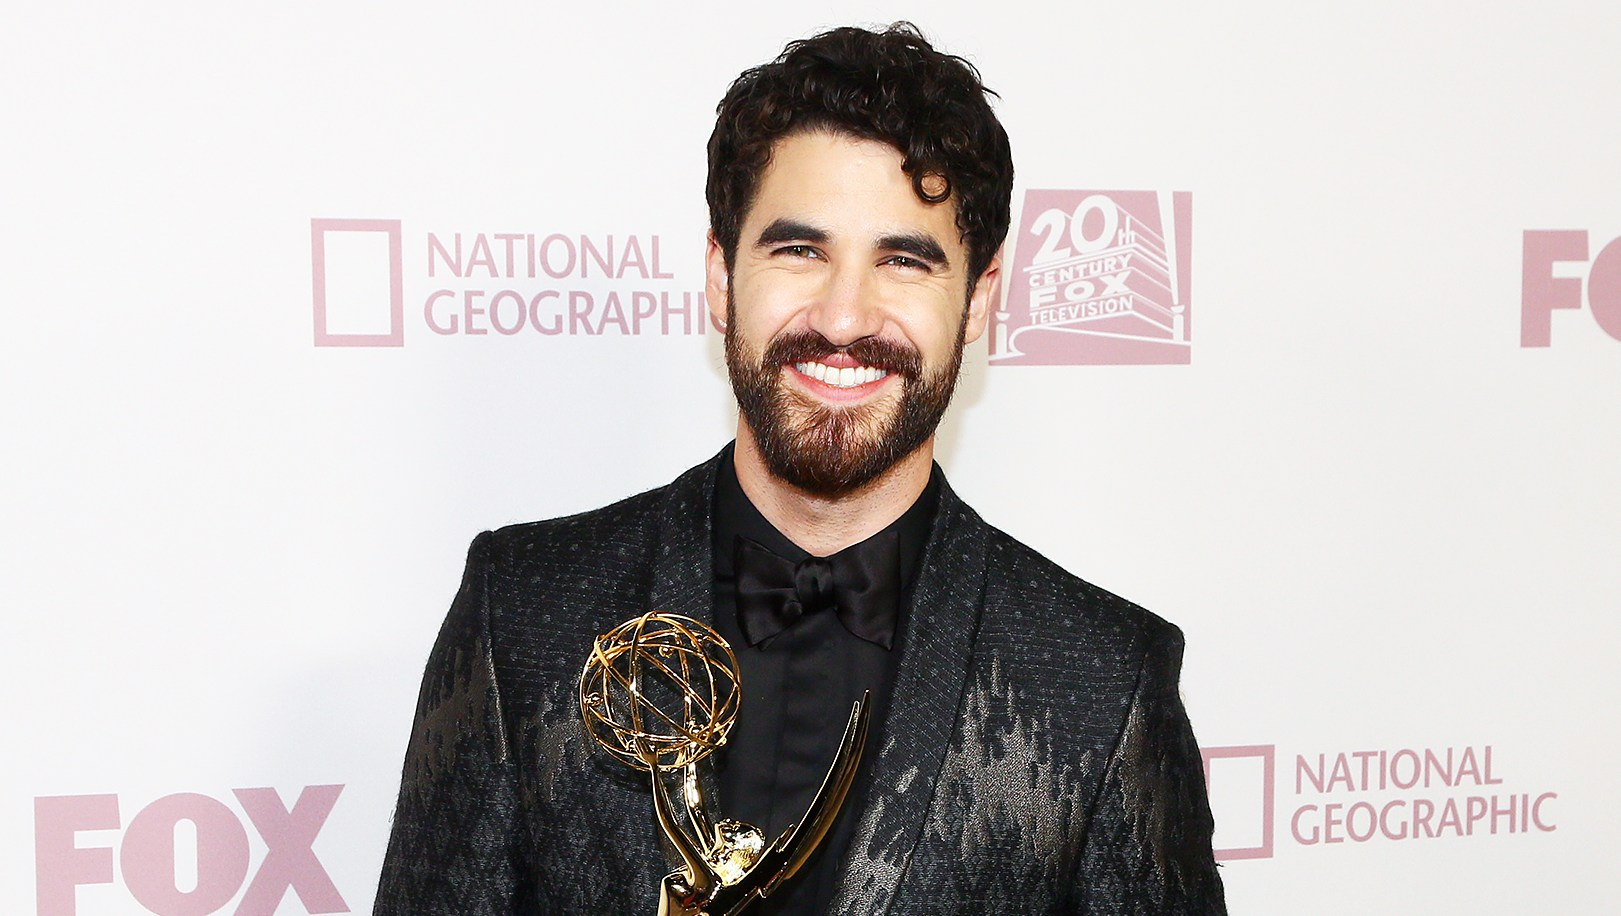 Darren Criss Emmys 2018 Win Surprised